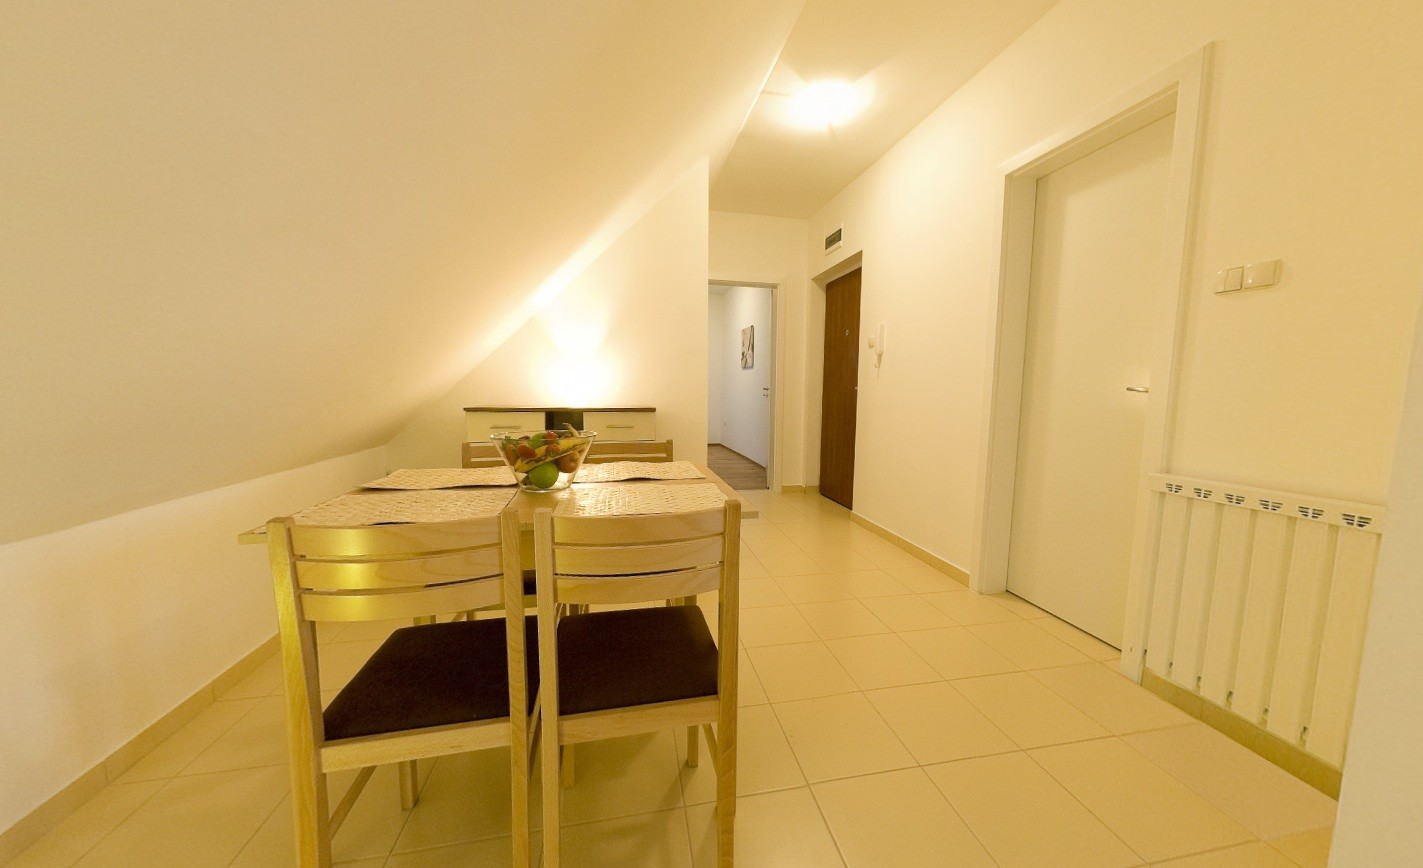 Apartment with big balcony - Corvin district | Flat rent ...